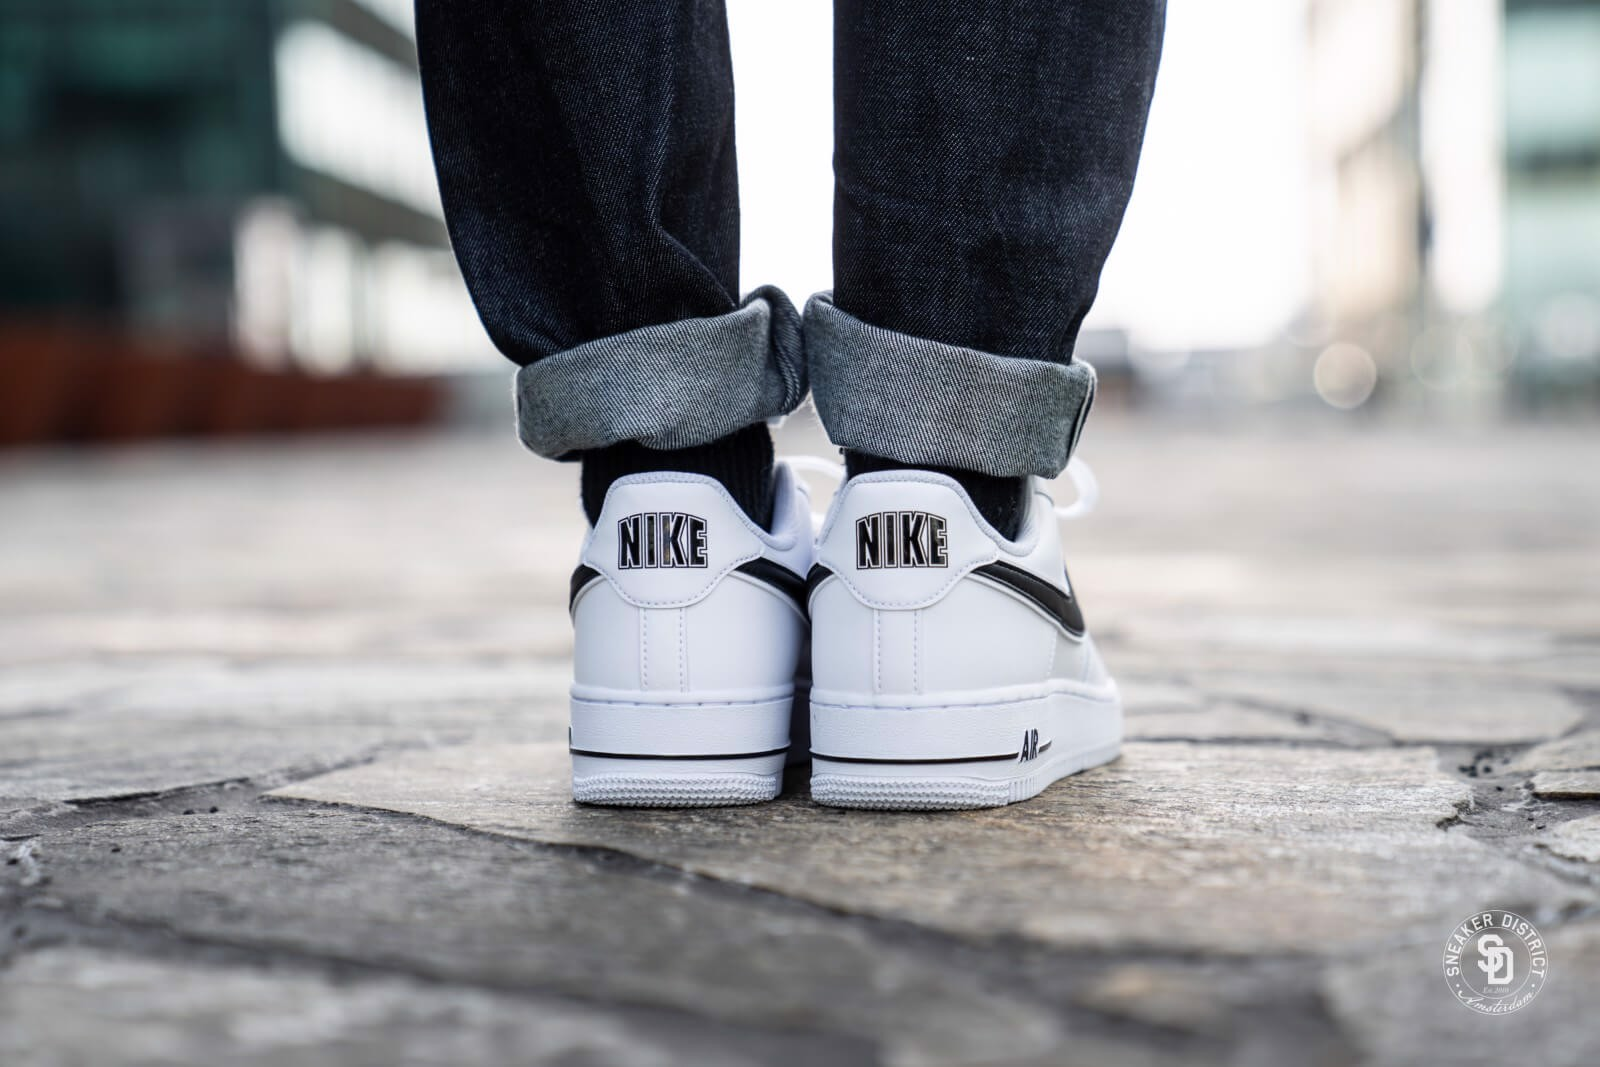 Nike Air Force 1 07 3 'White Black' AO2423-101